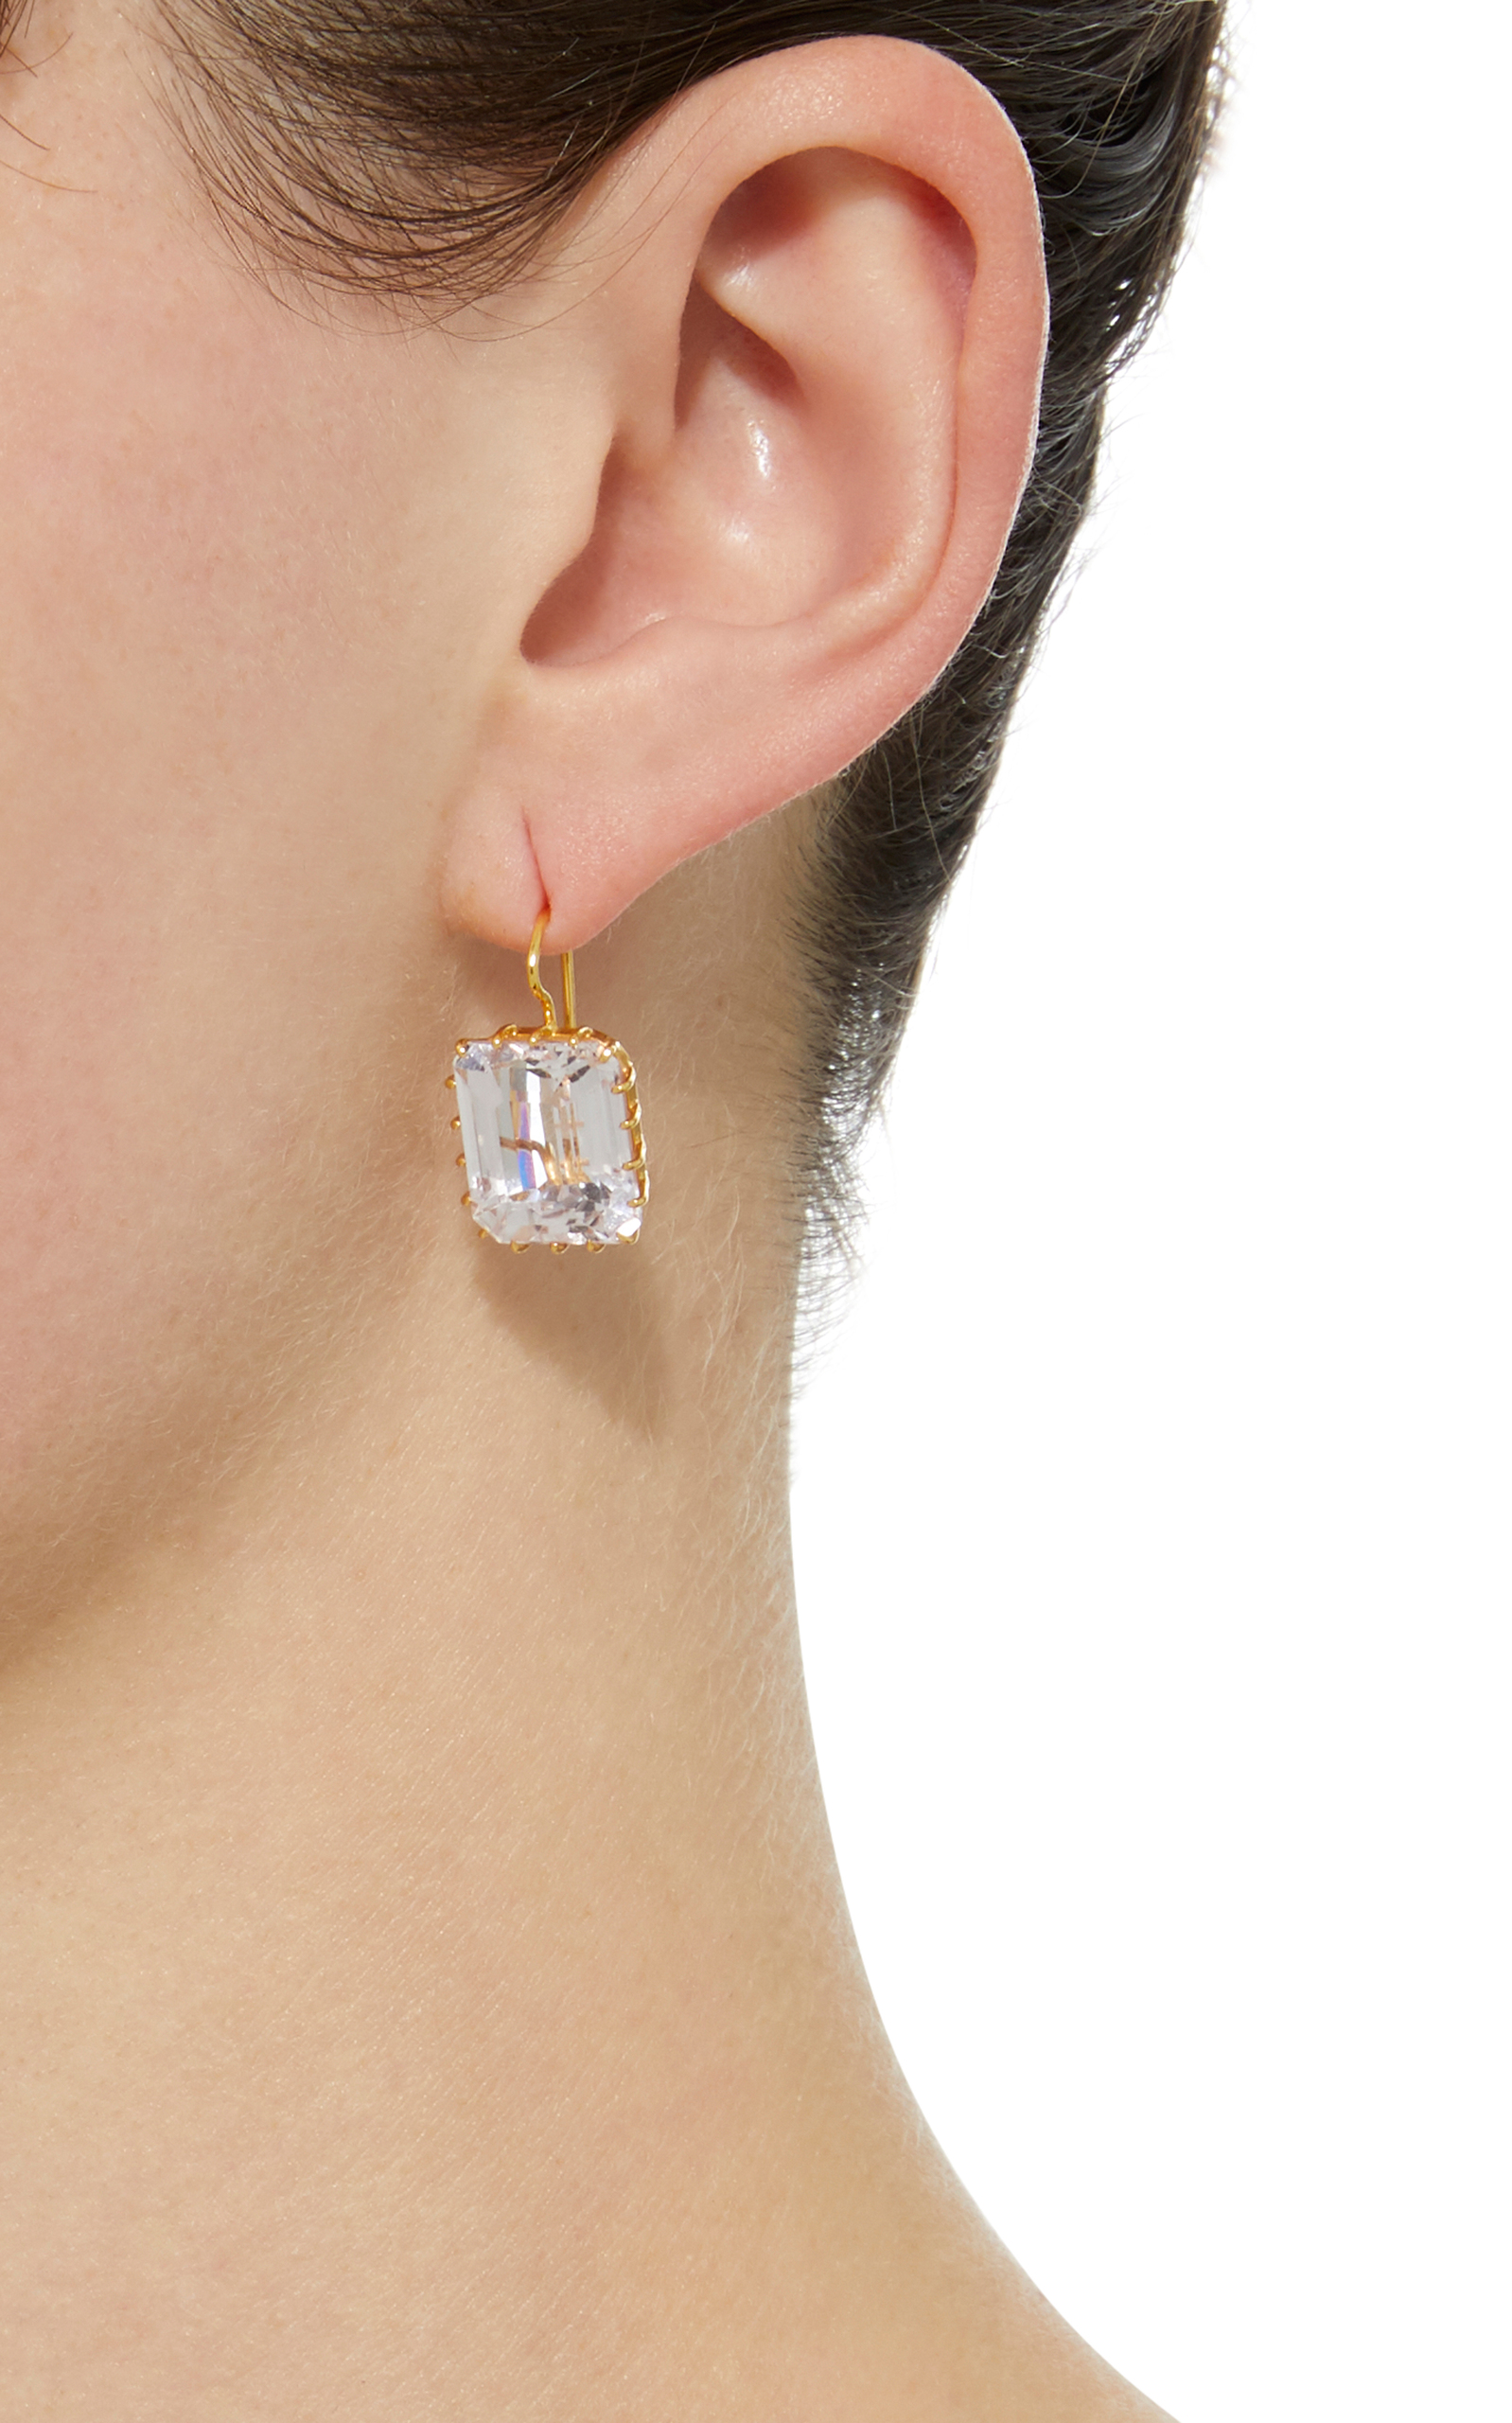 handcrafted earrings shop kunzite daniel gibbings jewelry drops fine